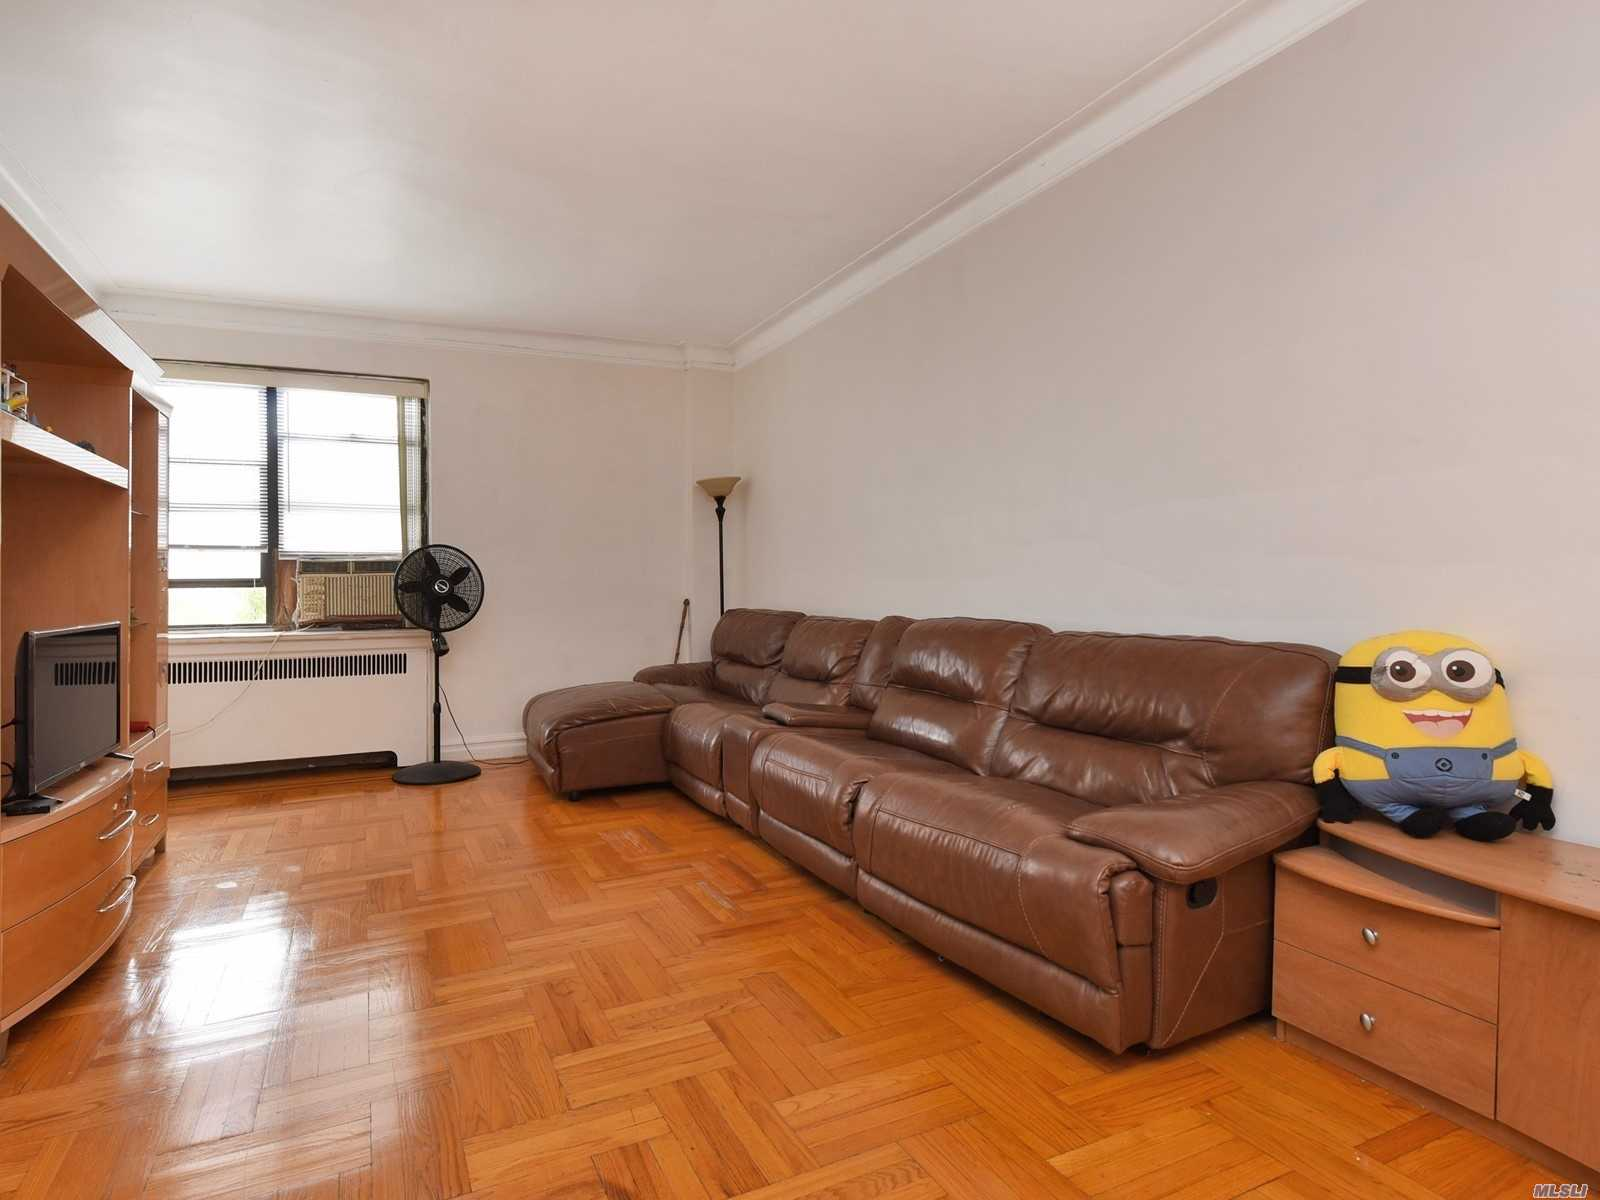 43-55 Kissena Blvd 11355 - One of Flushing Homes for Sale